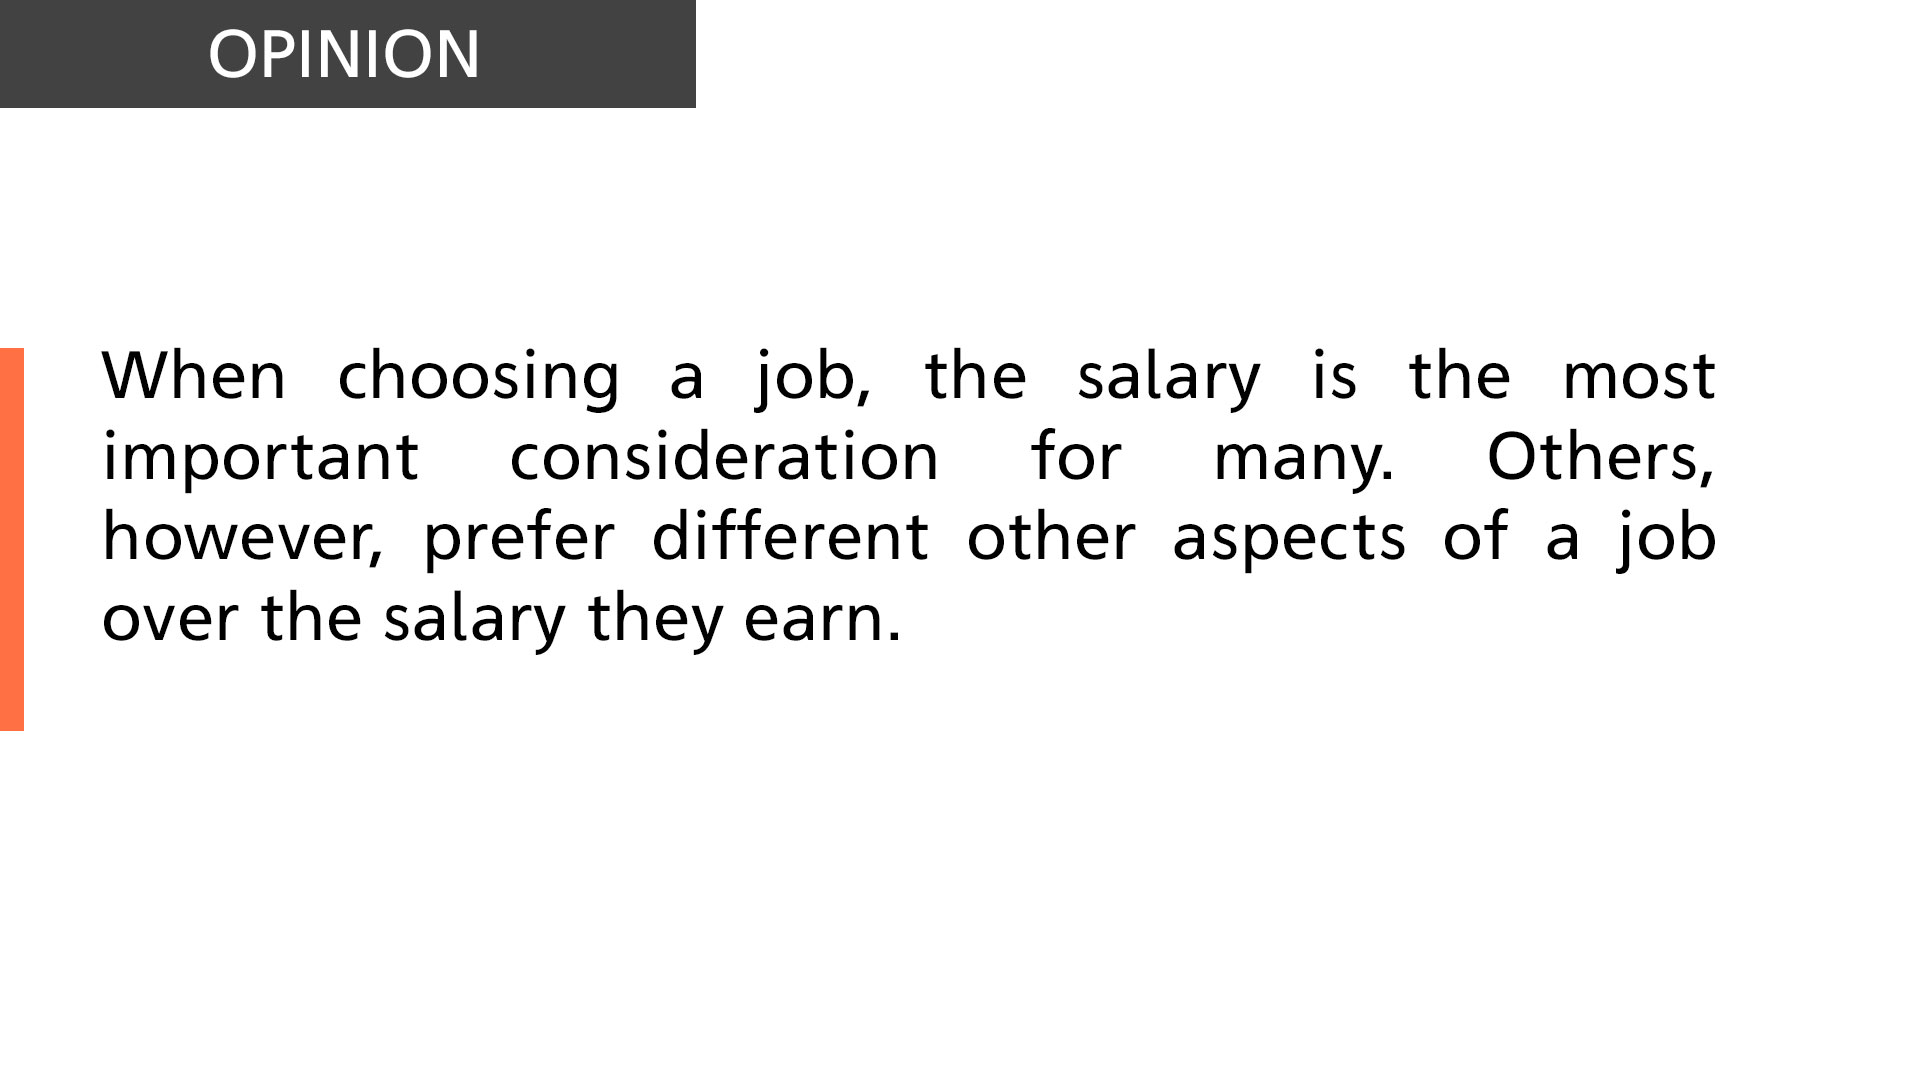 salary is the most important consideration